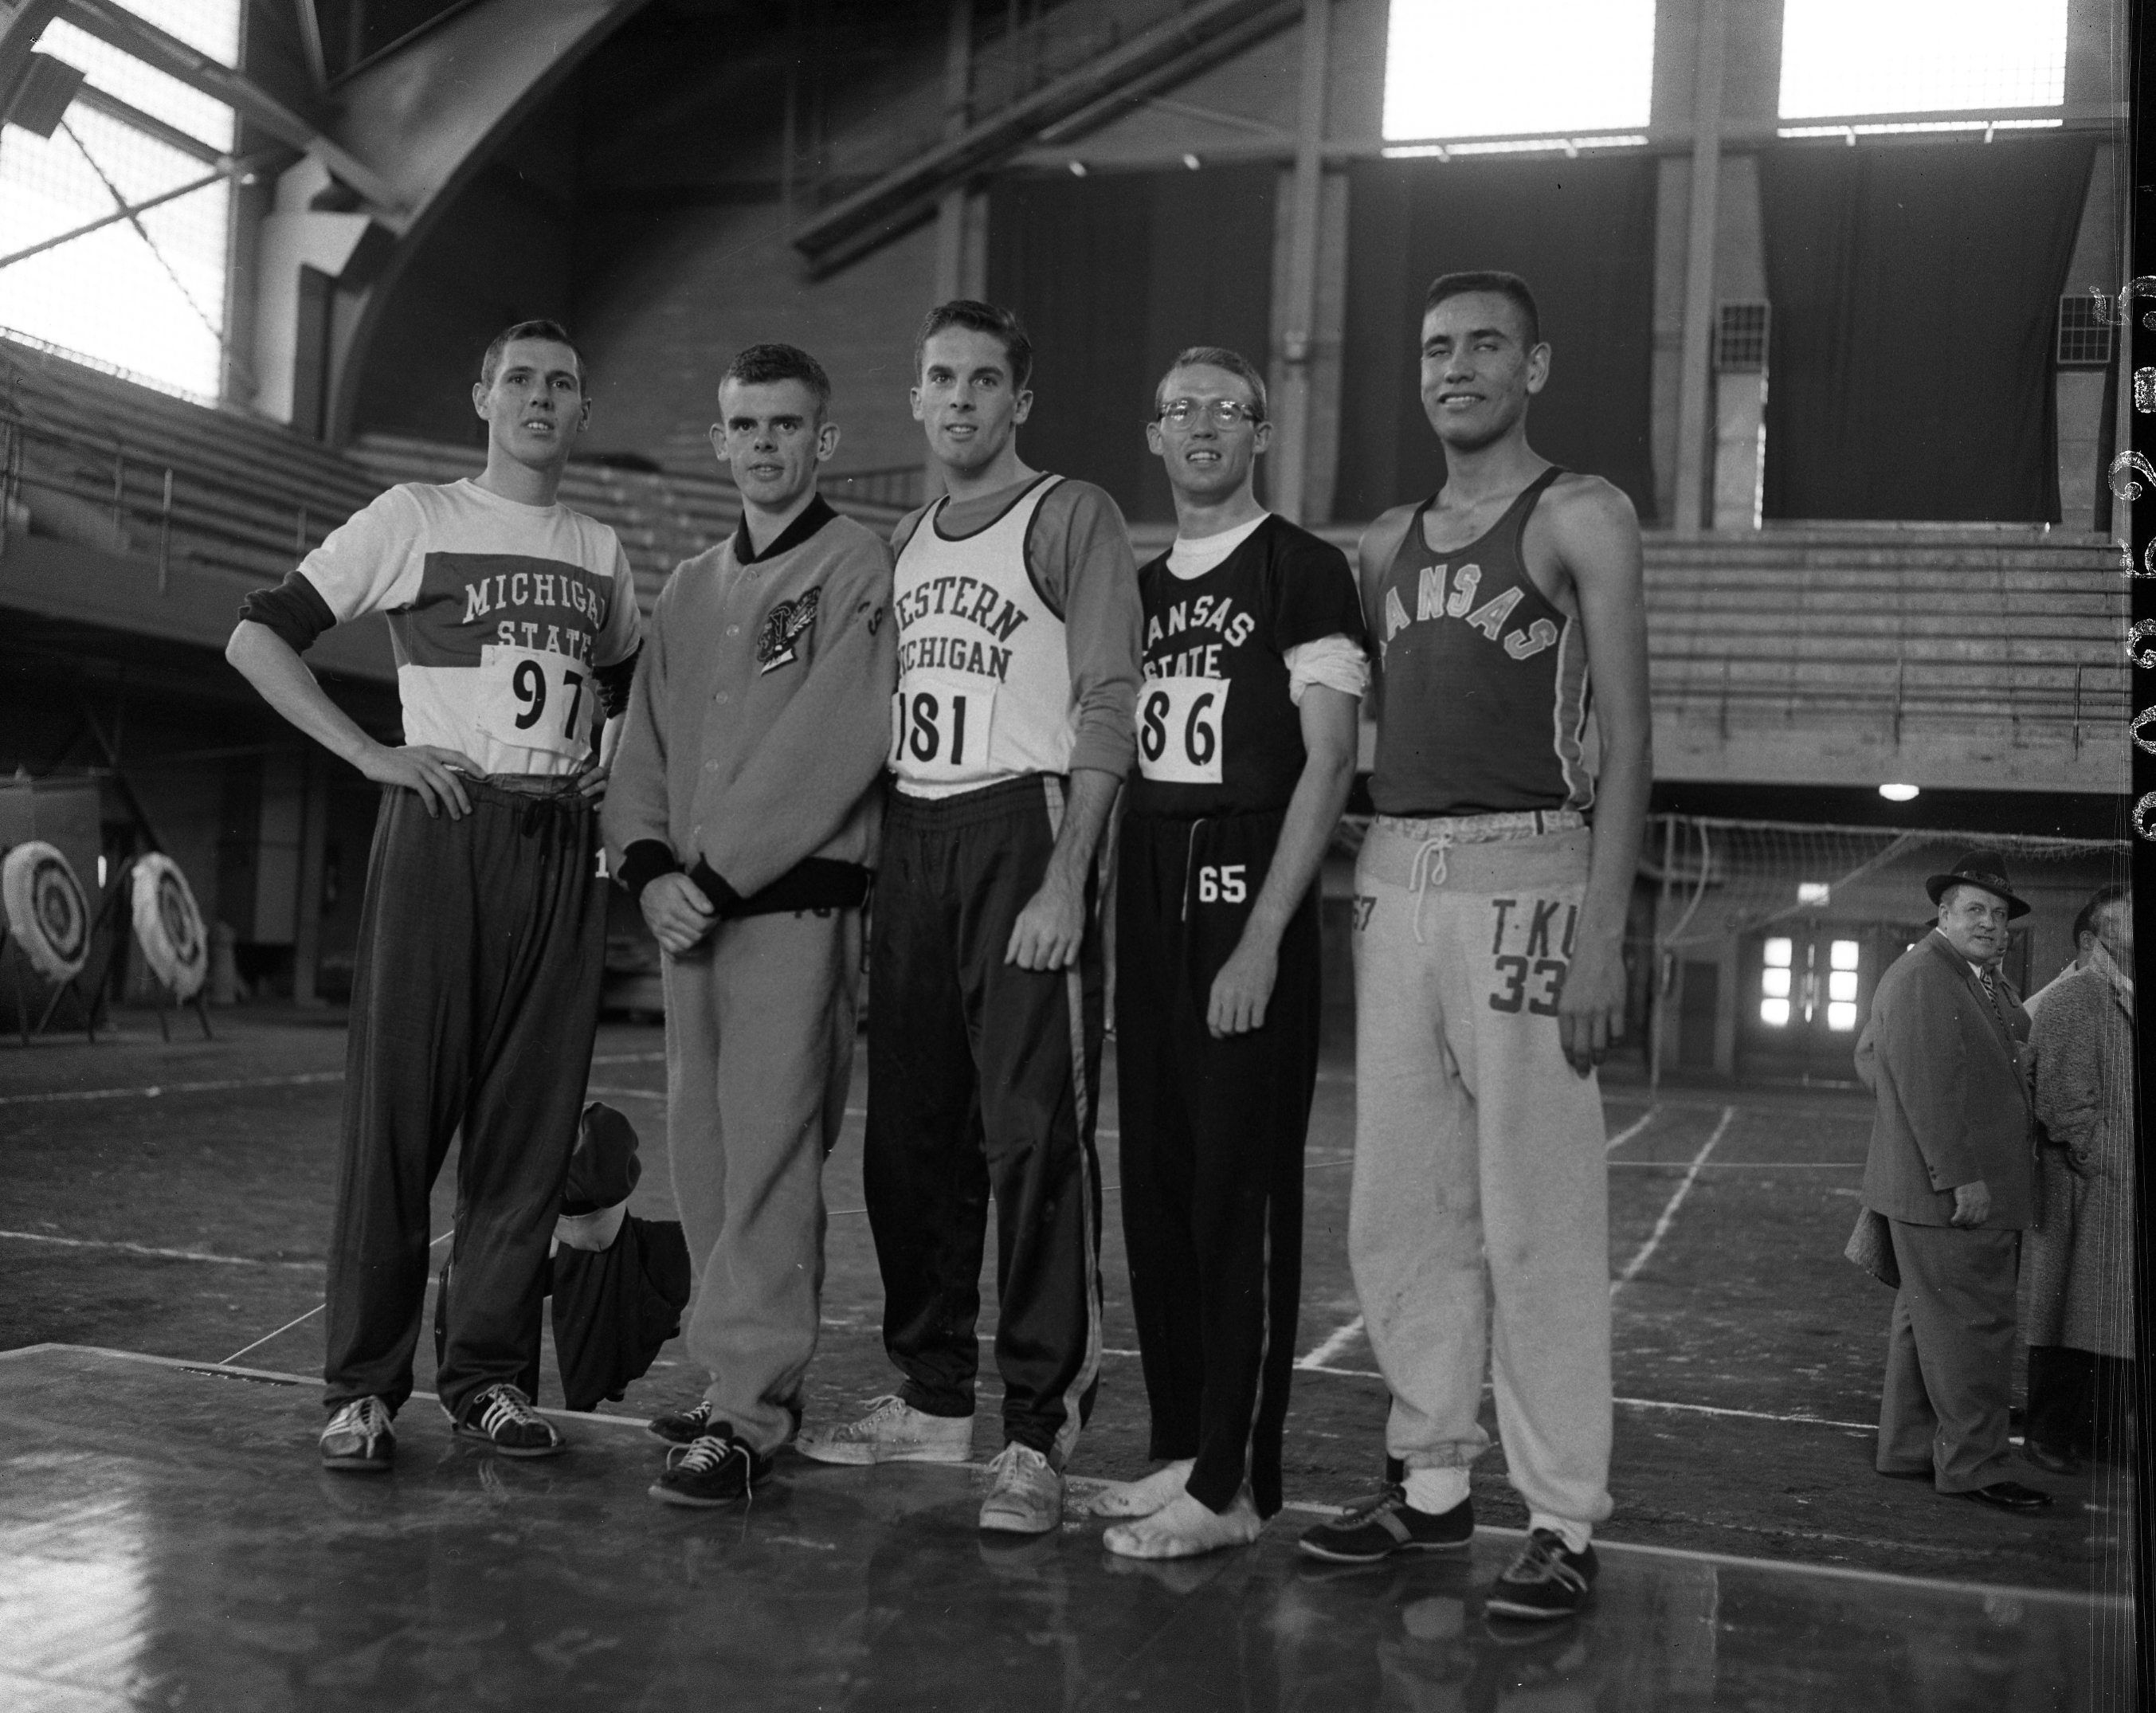 Cross Country team members in Jenison Field House, circa 1950s